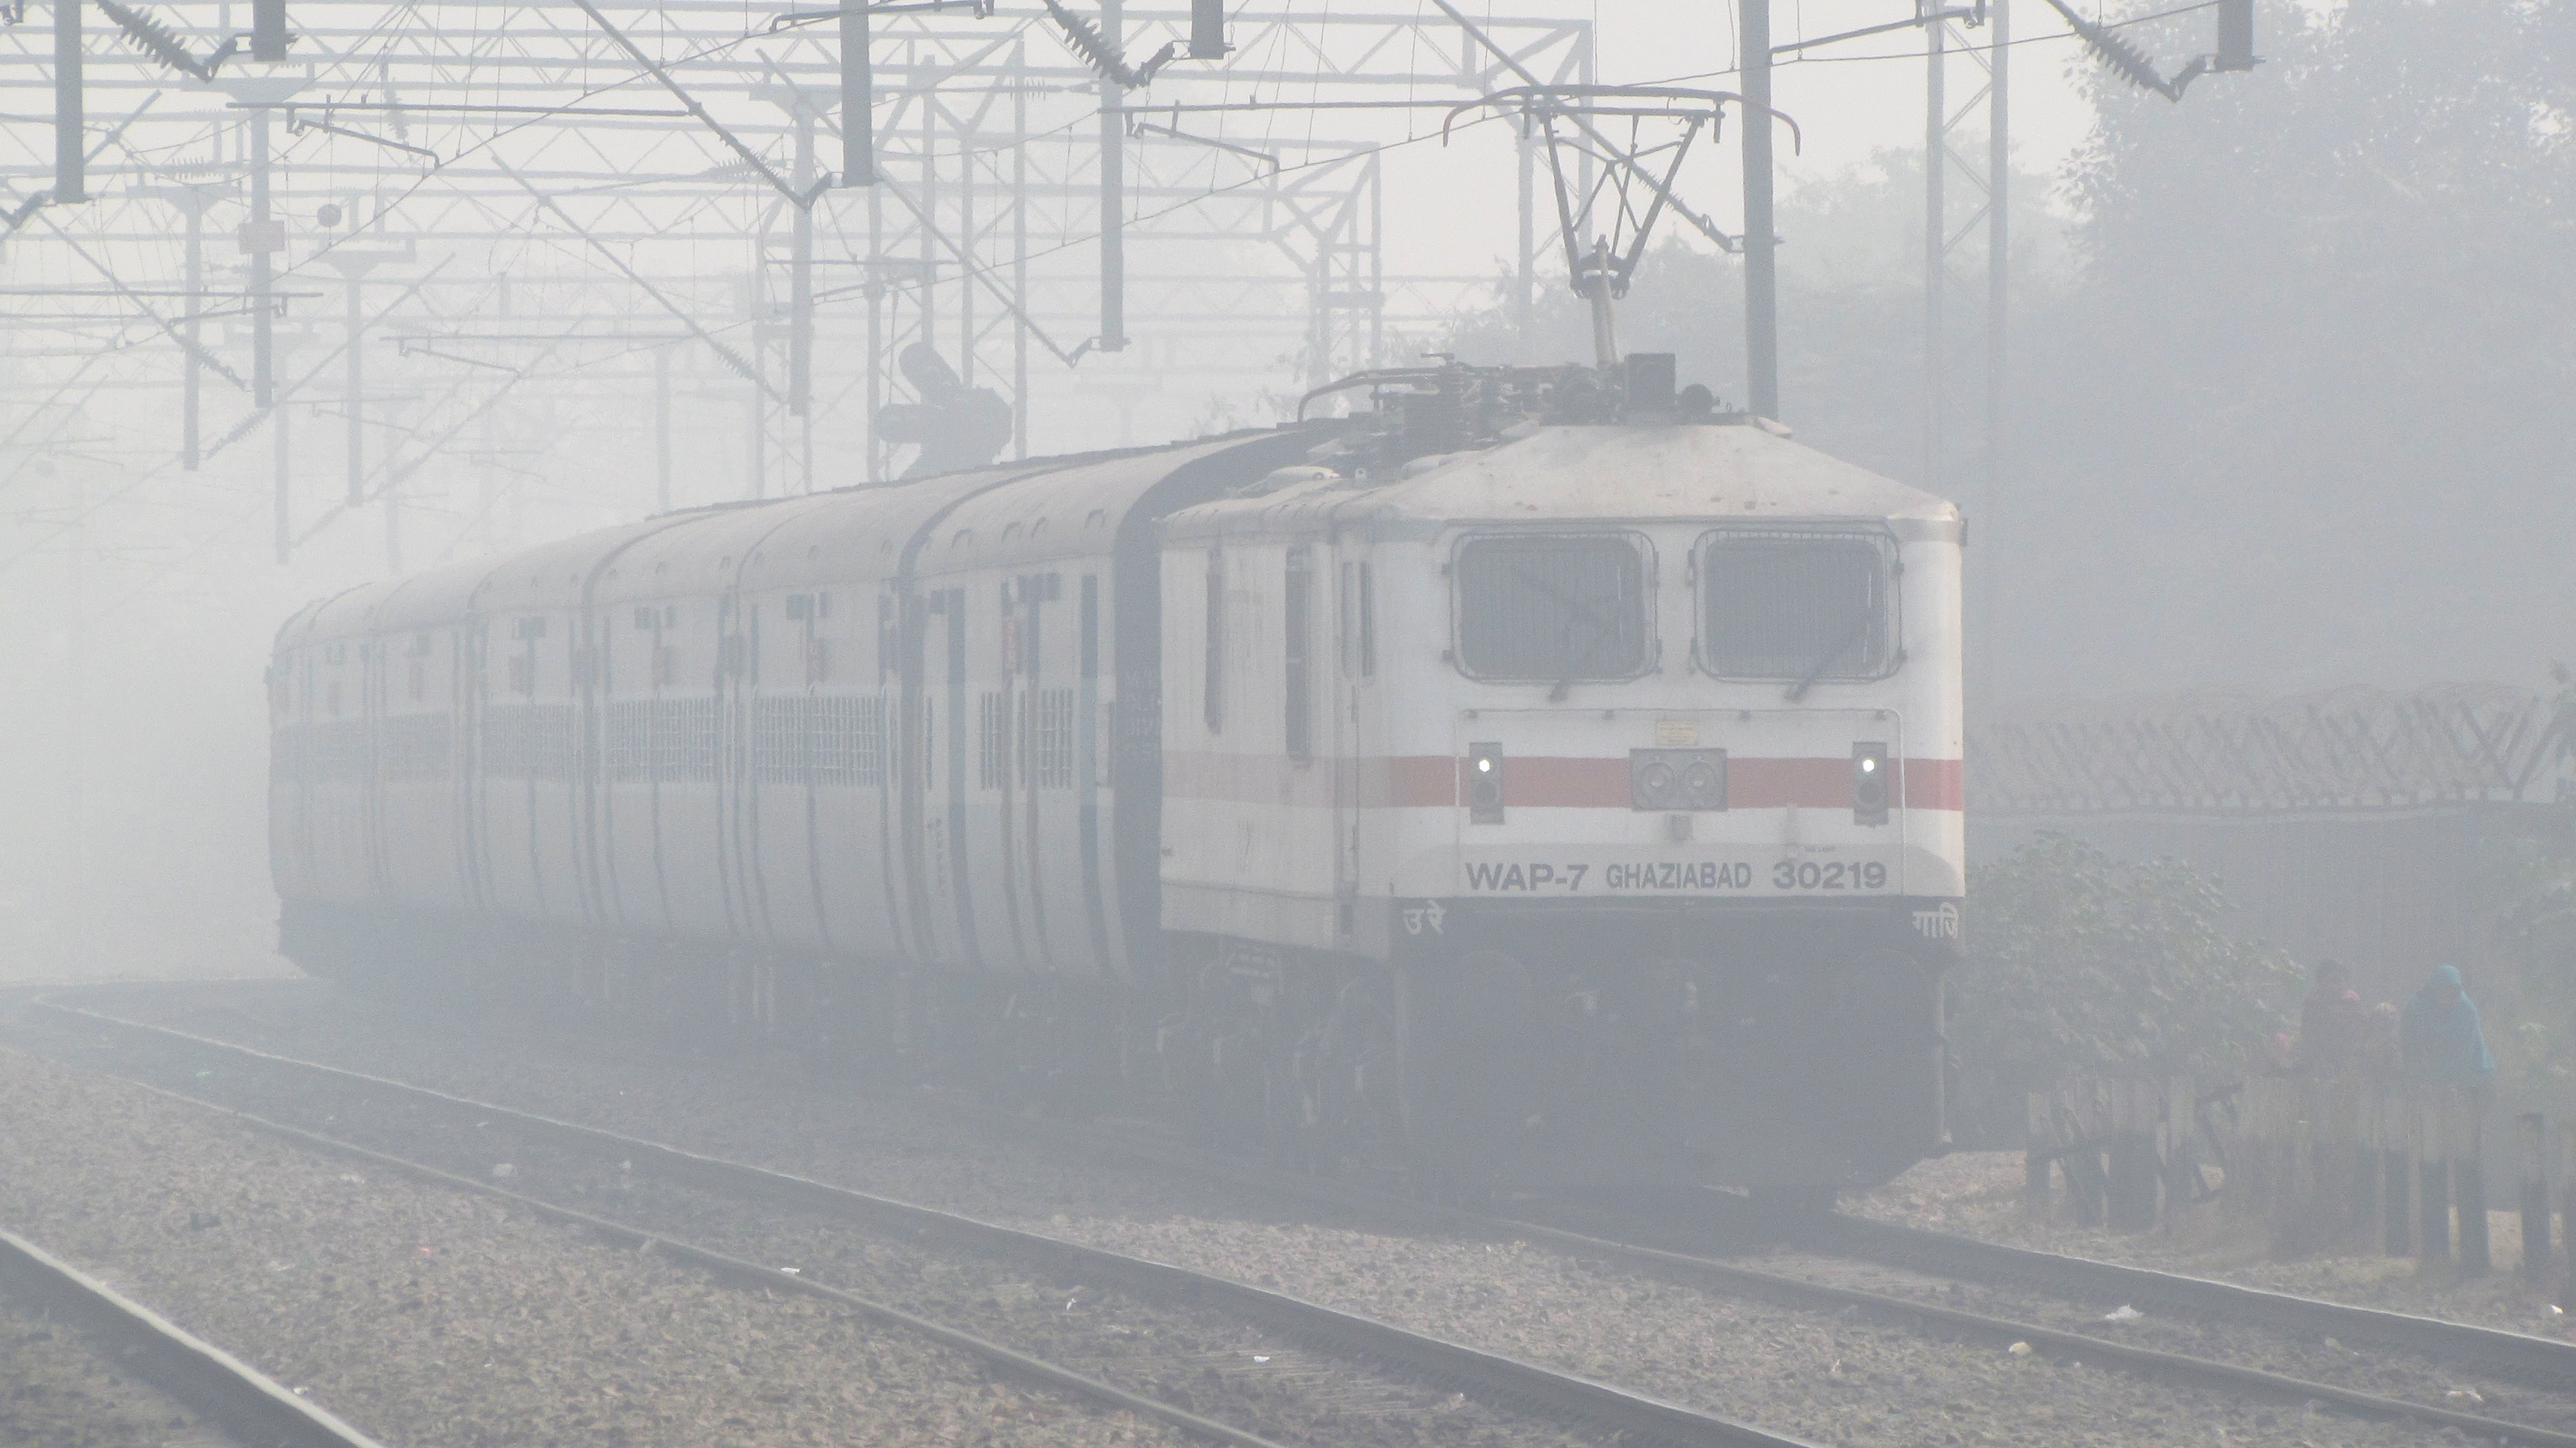 Delhi: Partly cloudy Friday morning, six trains cancelled